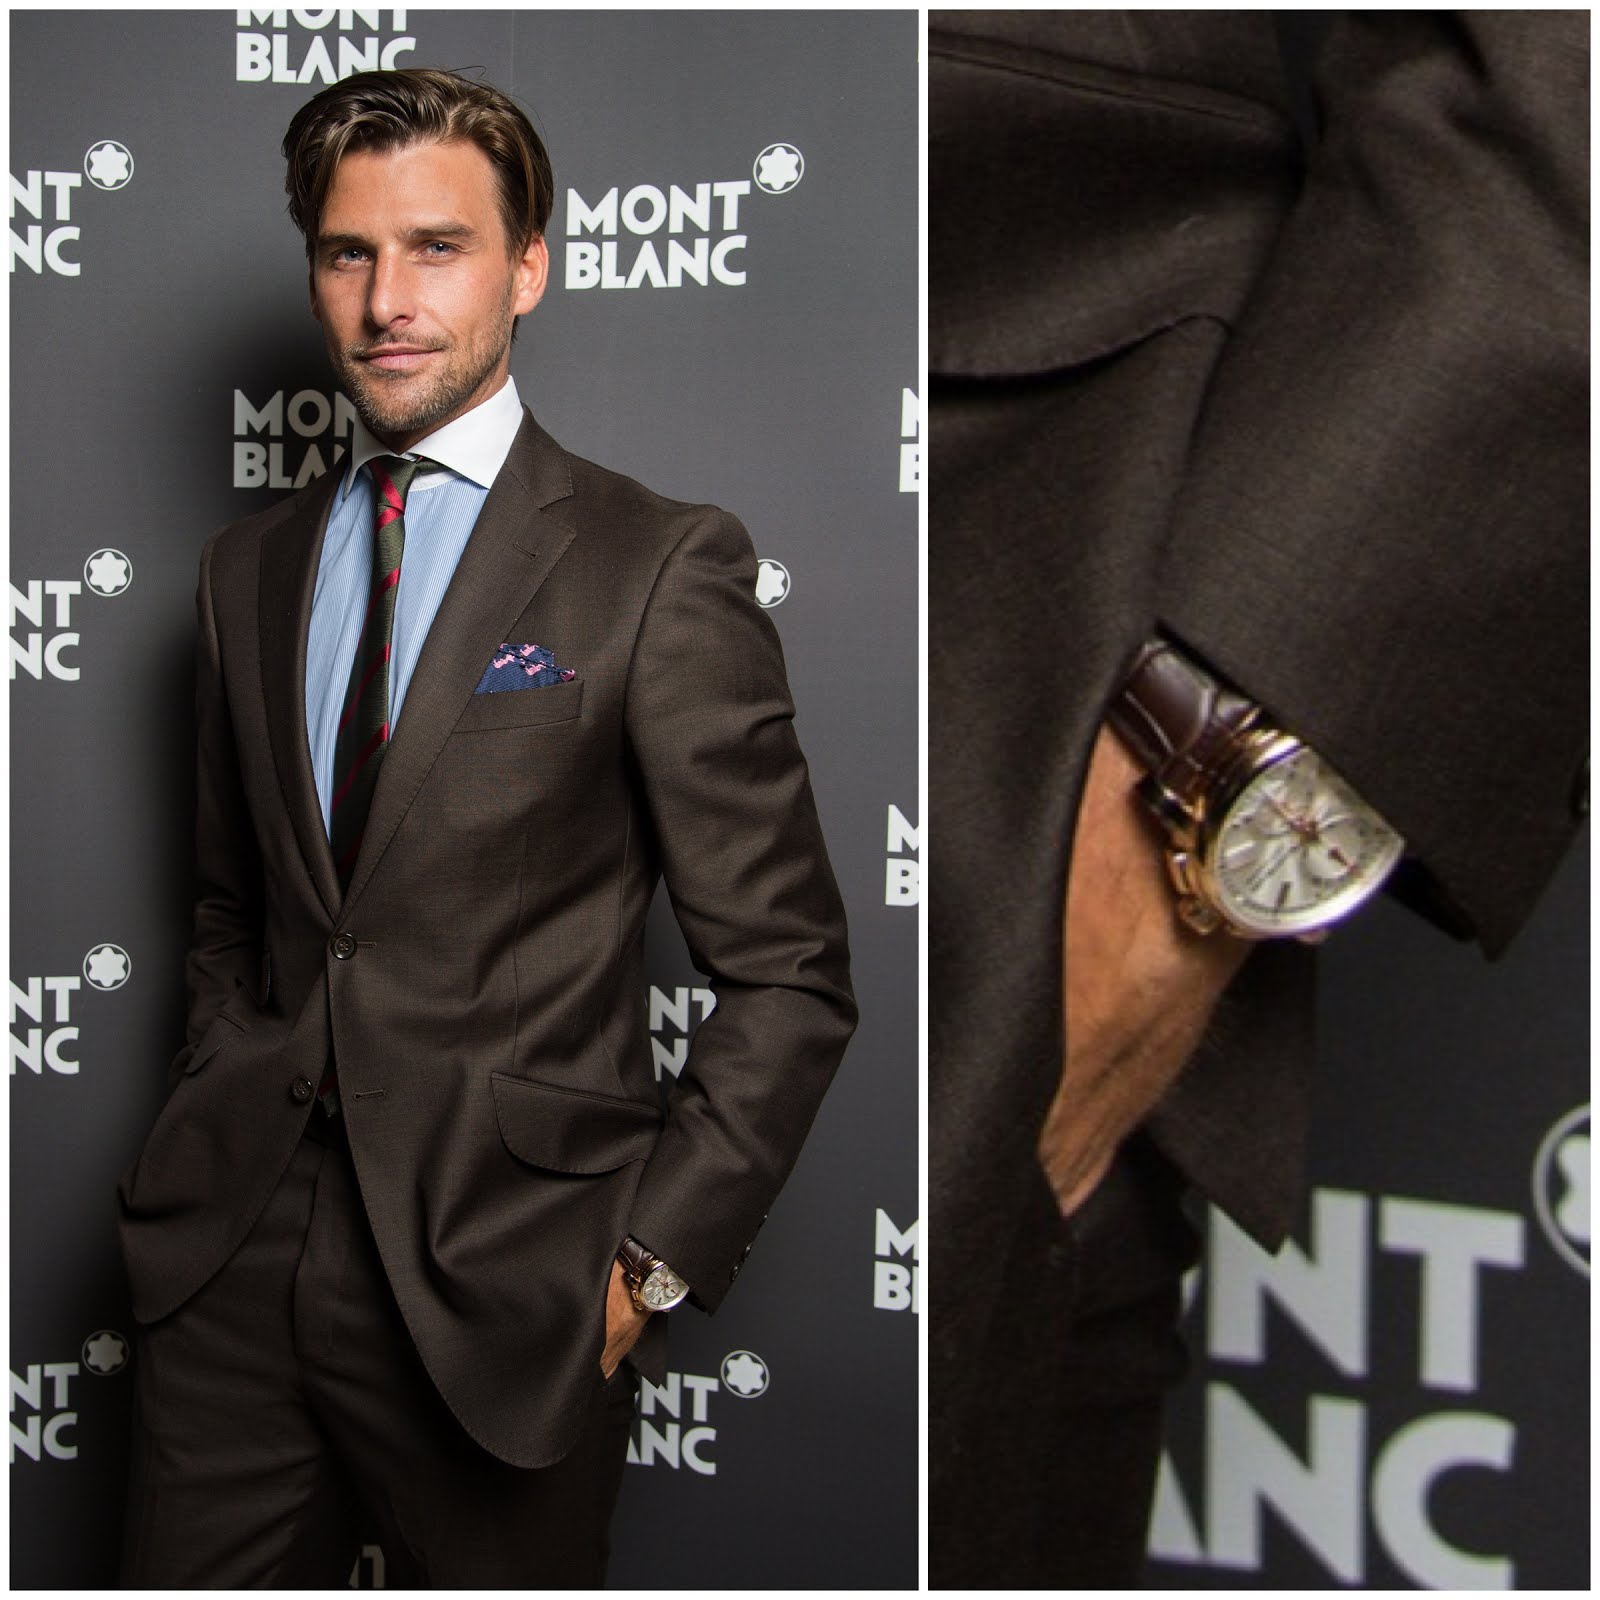 00O00 Menswear Blog Johannes Huebl at #SIHH2013 Salon International de la Haute Horlogerie with Montblanc Star 4810 Chronograph Montblanc VIP dinner